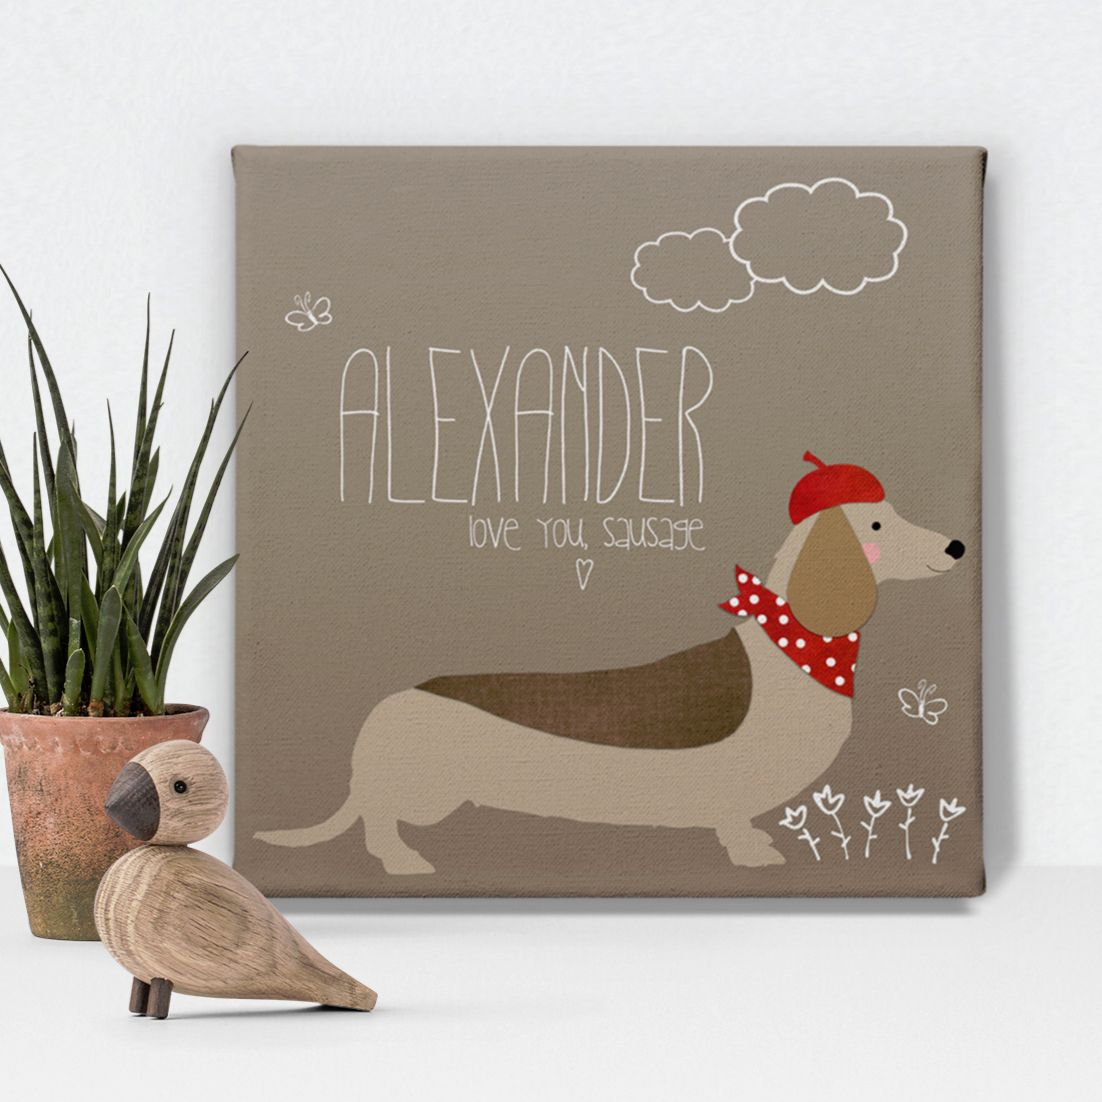 Sausage Dog dachshund personalised canvas print